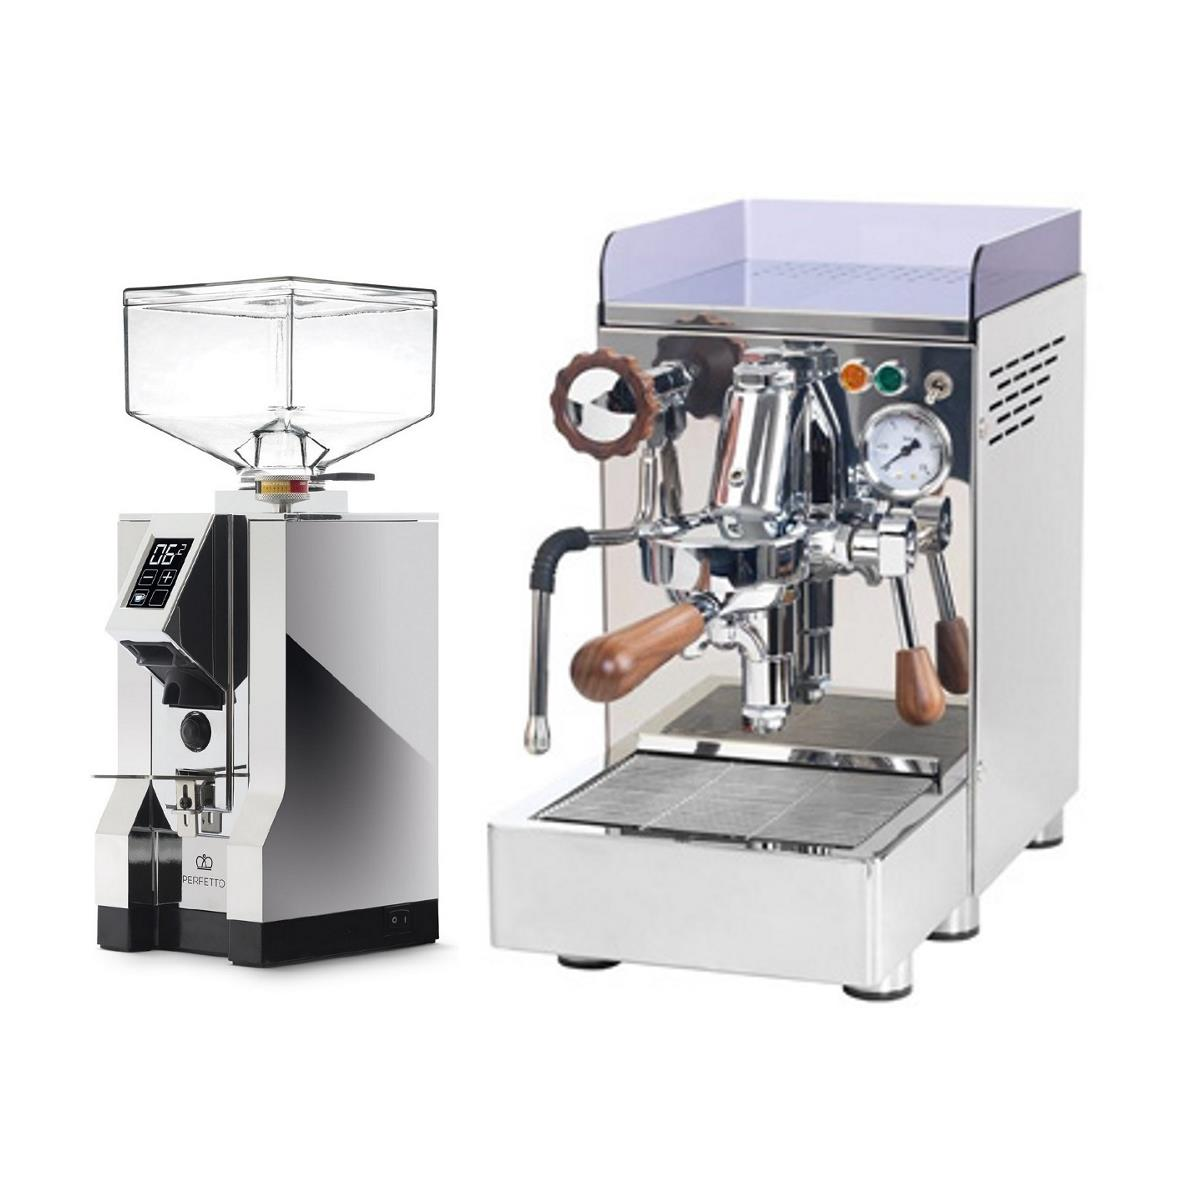 Coffee machine 969.coffee Elba2 + Coffee grinder Eureka Mignon Specialita' 16CR - Chrome